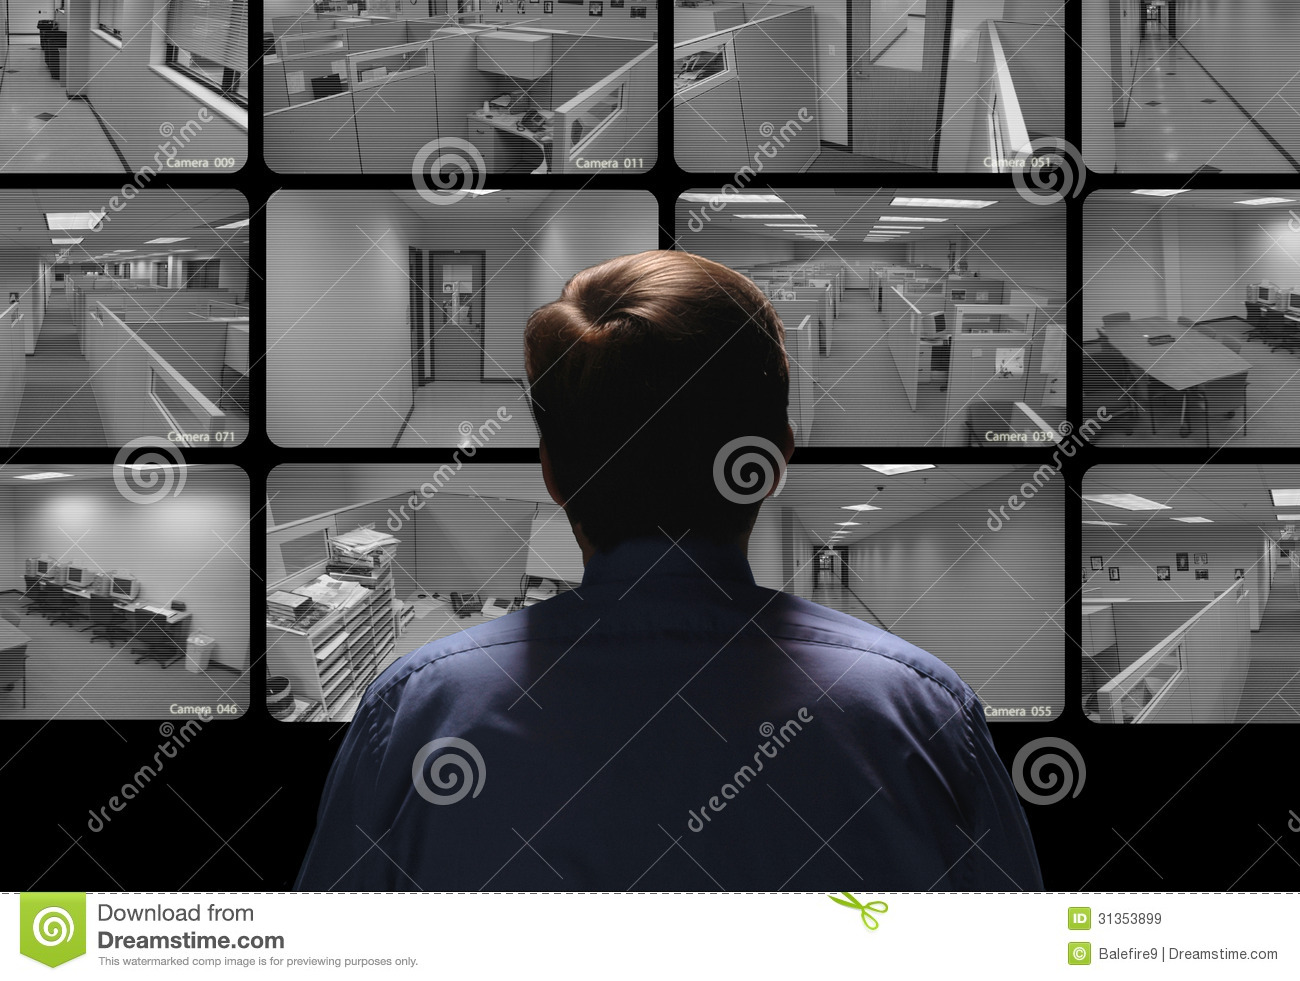 Security guard conducting surveillance by watching several security monitors